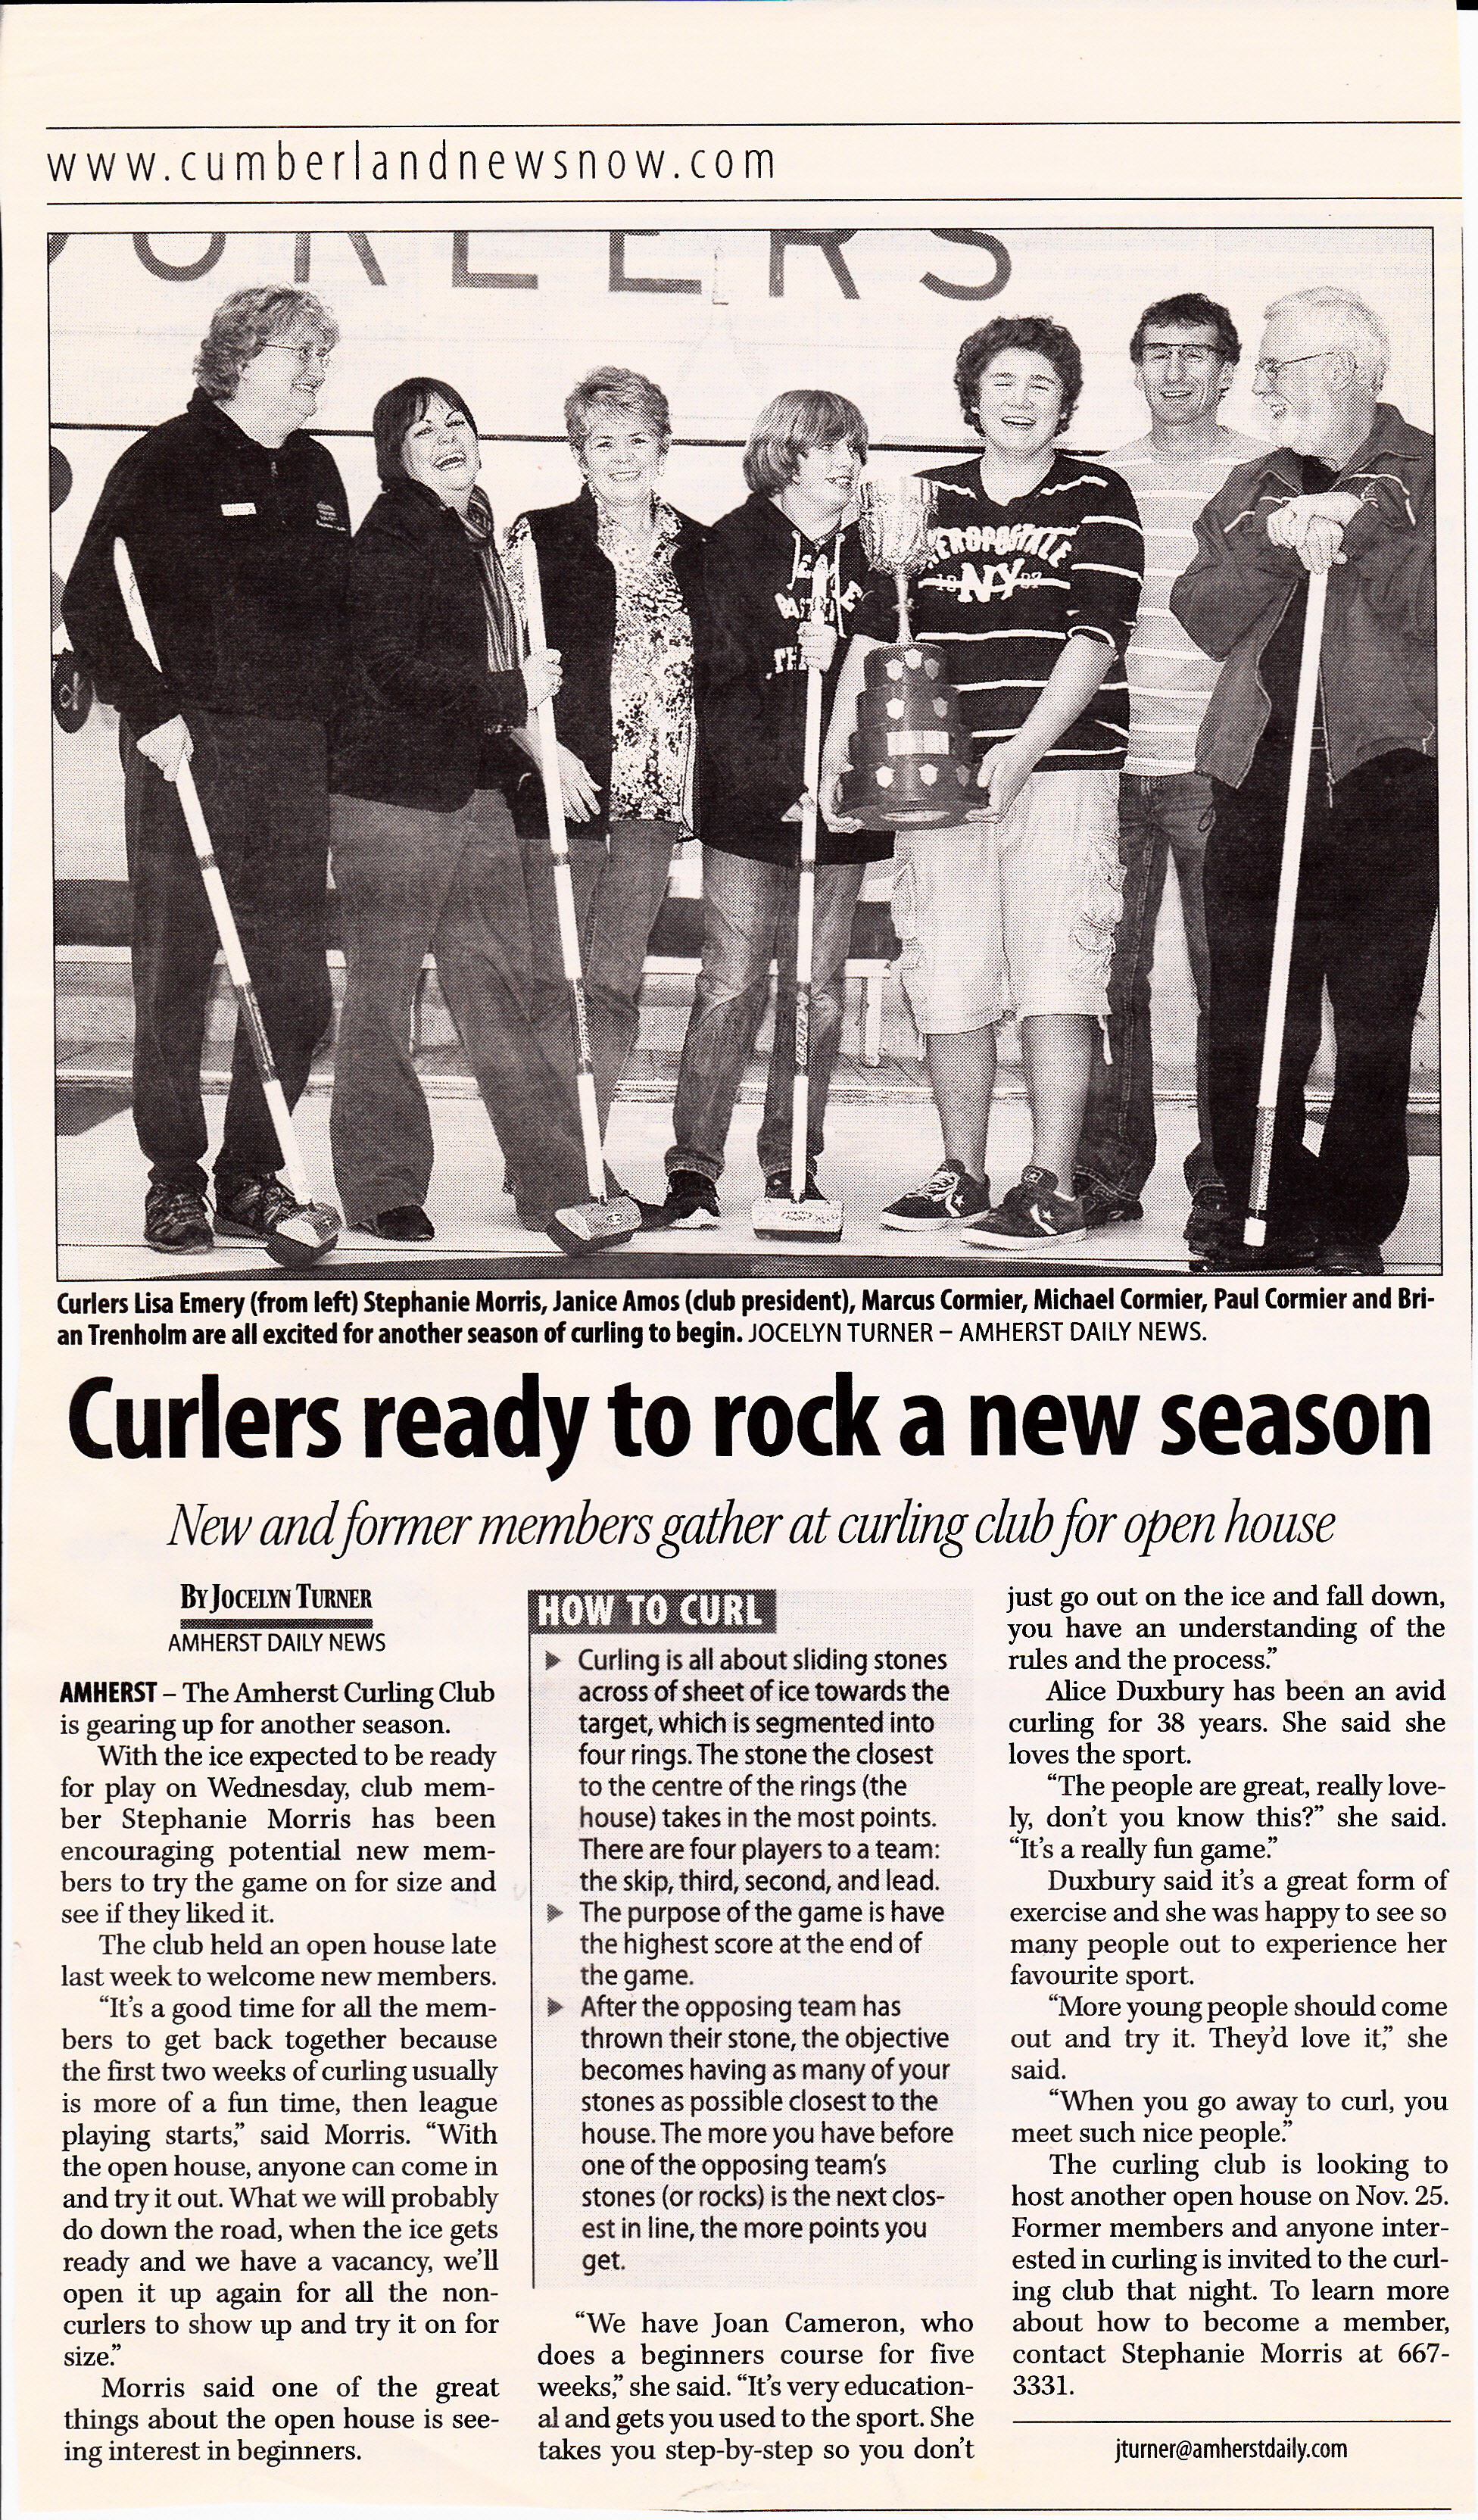 Curlers Ready to Rock Season 2012-13